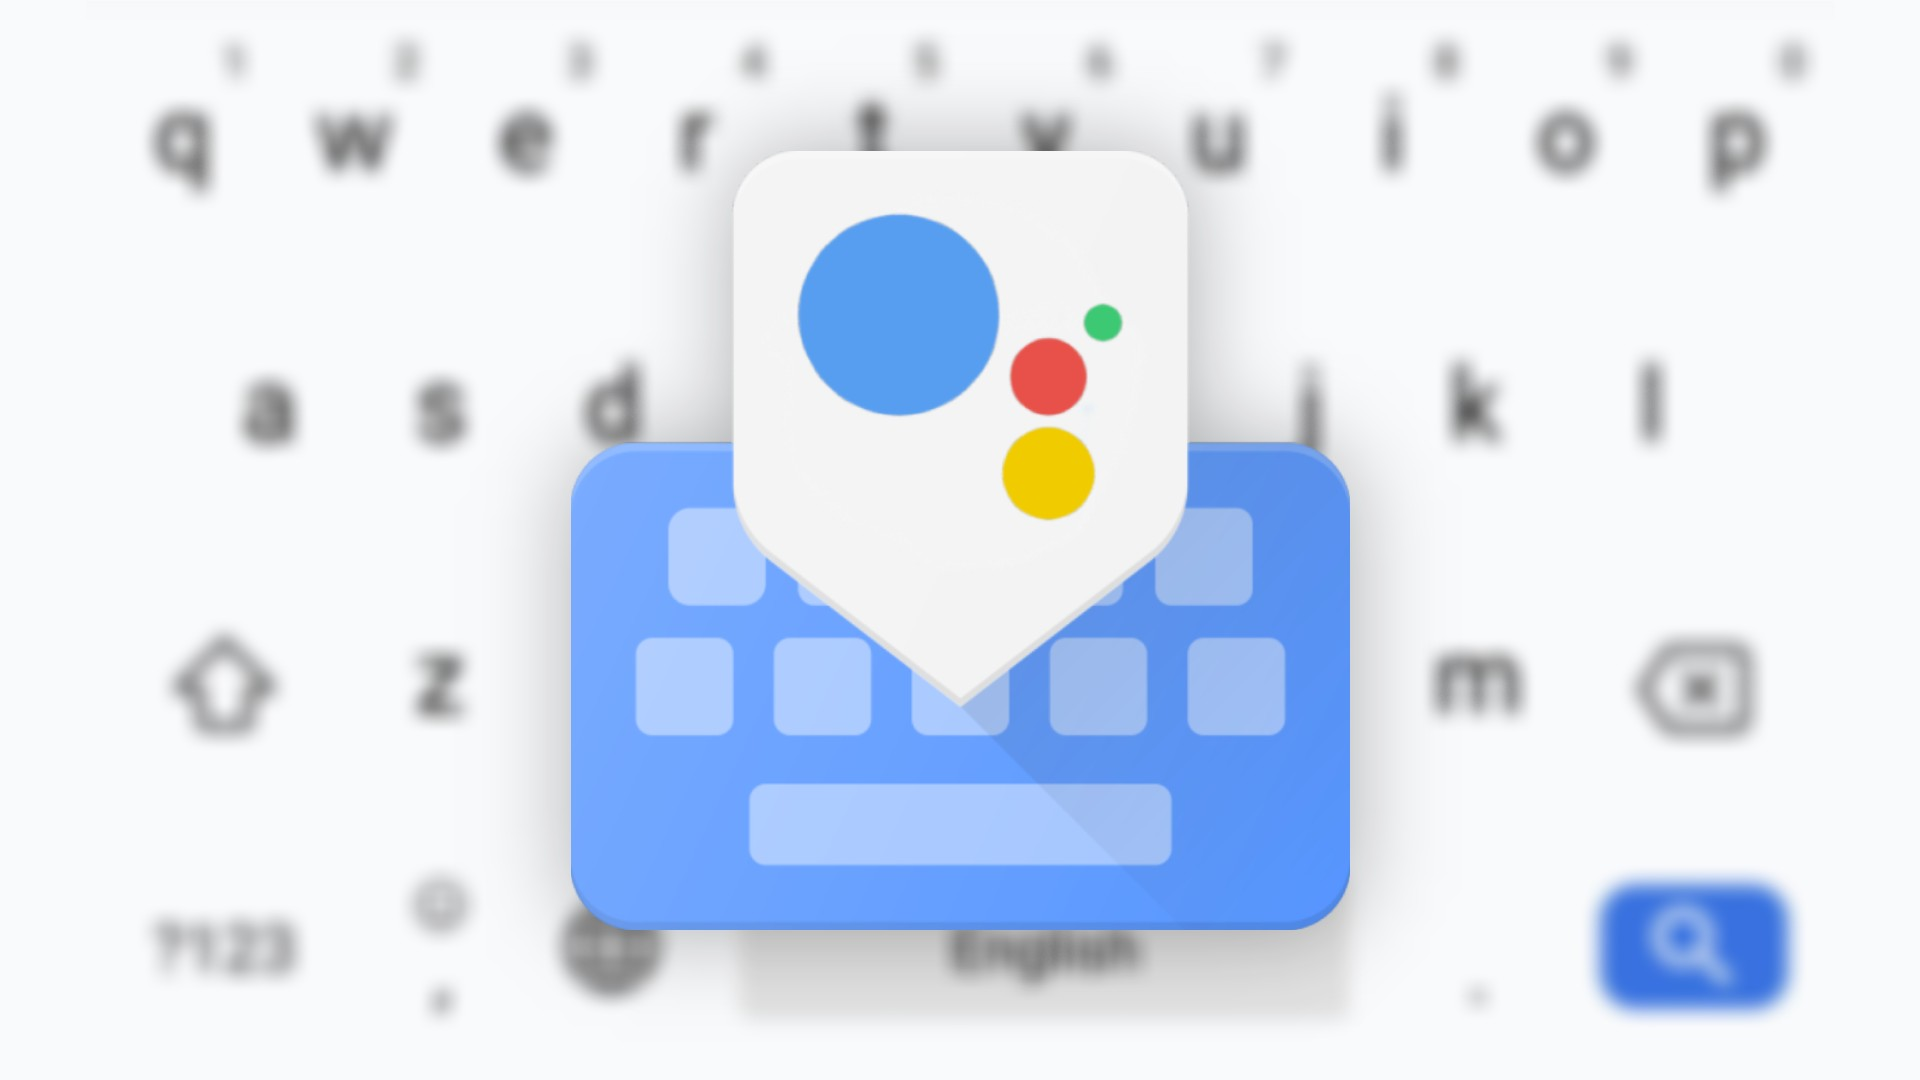 [Updated] Gboard joins forces with Google Assistant to end the need for dictating punctuation